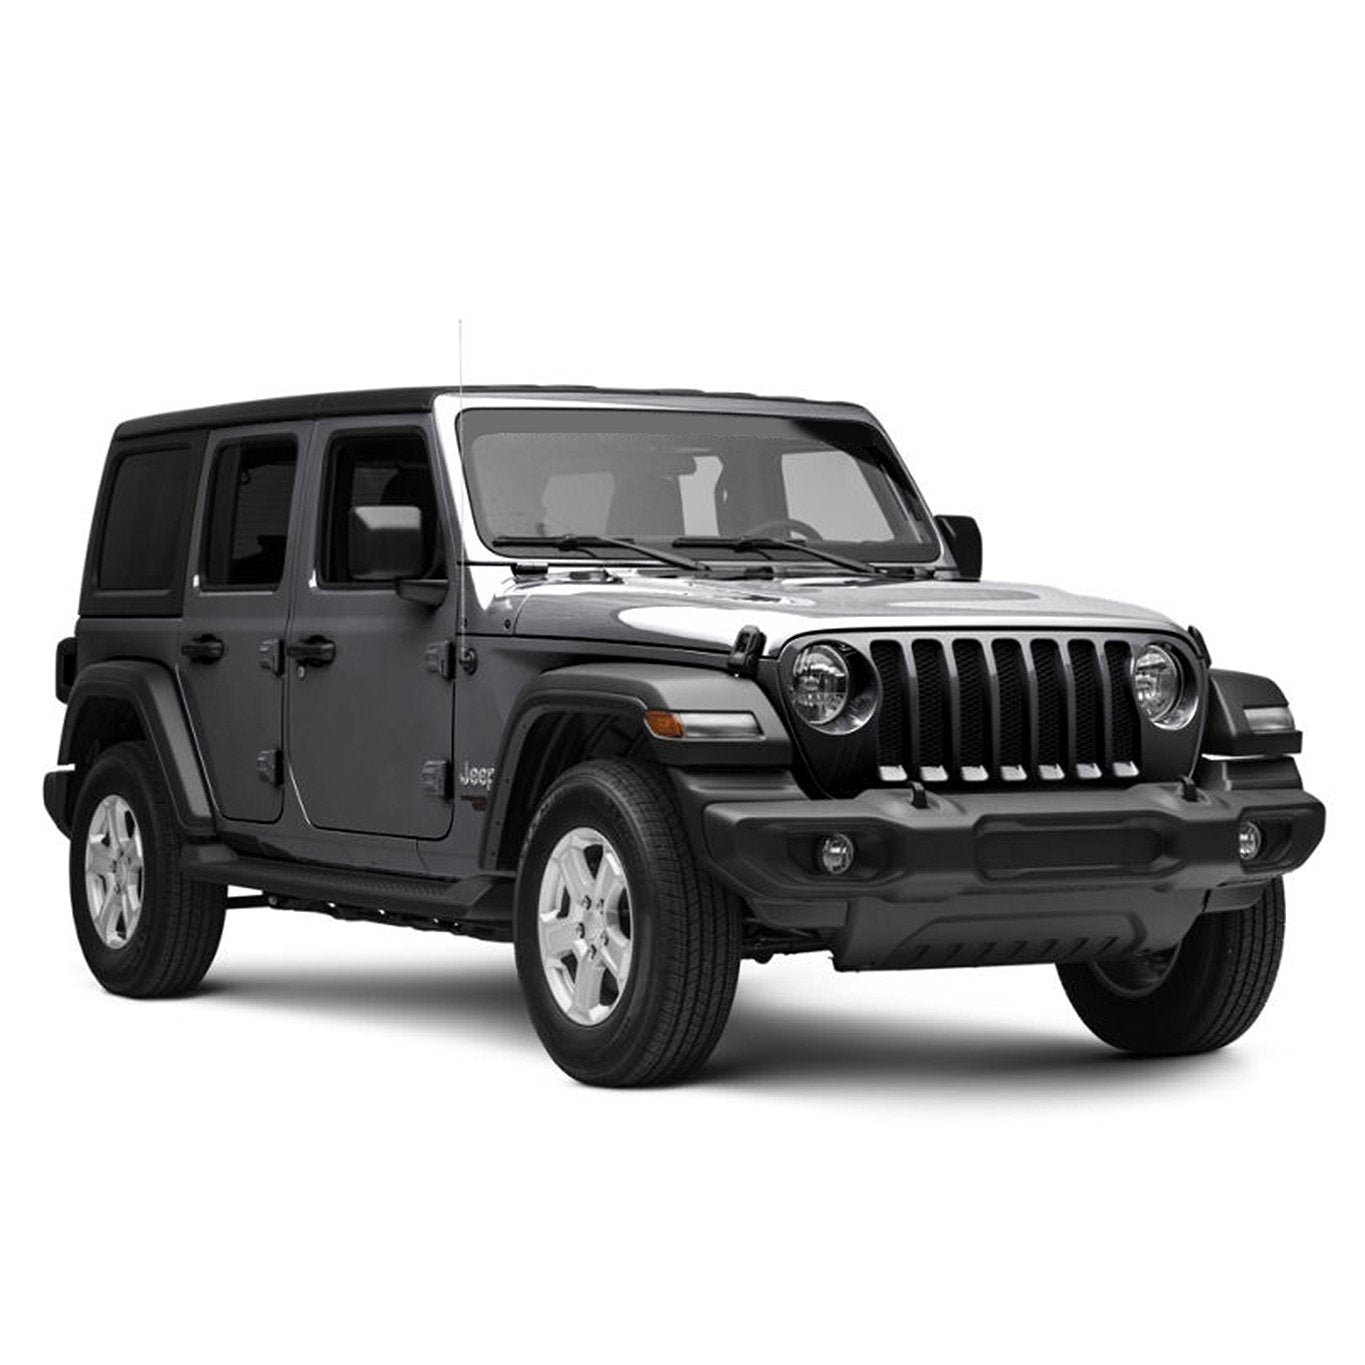 OE Factory Style Side Step Bars for Jeep Wrangler JL 2018 4 Door